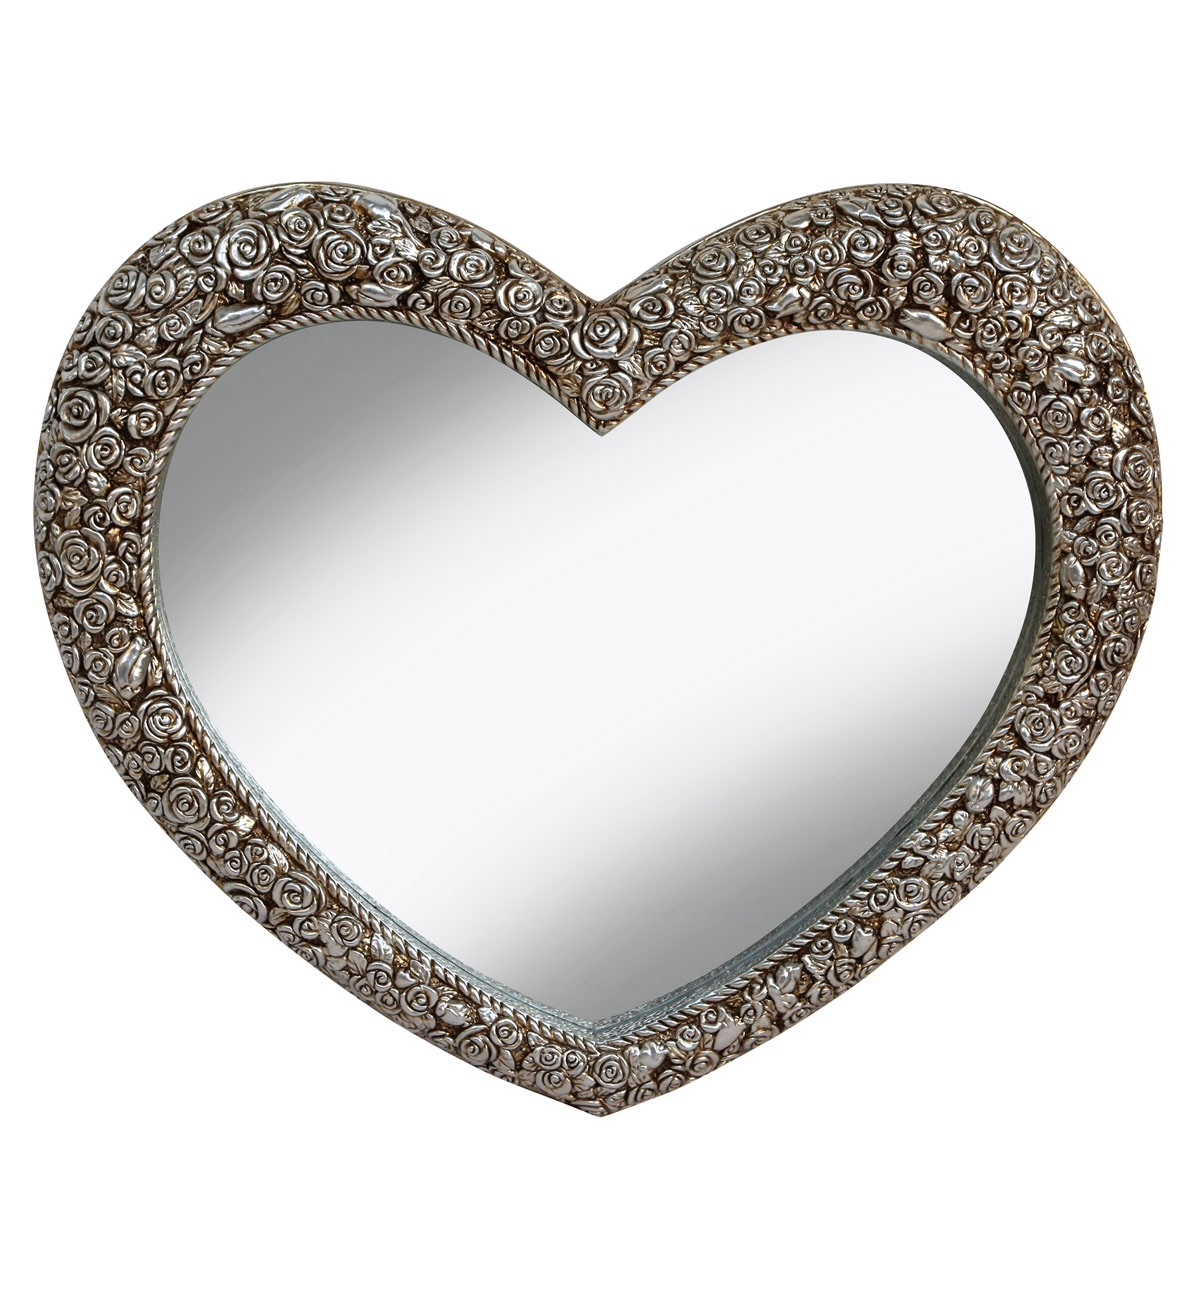 Heart Shaped Decorative Framed Mirror In Bronze By